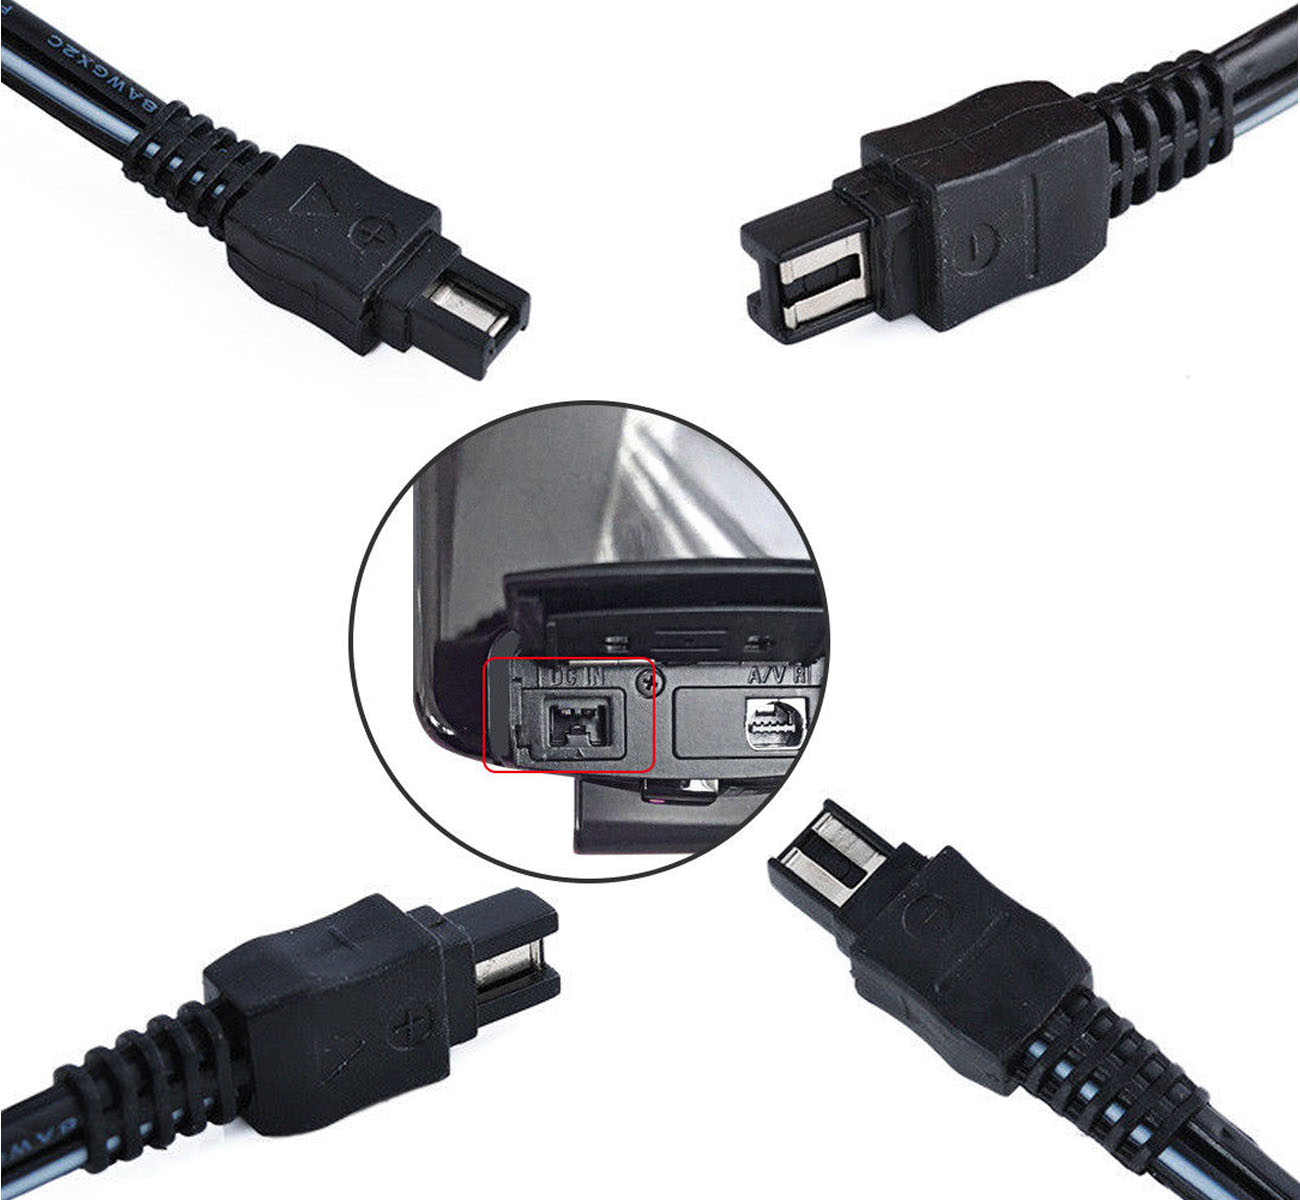 AC Battery Power Charger Adapter Cord Compatible with Sony Camcorder DCR-DVD808 E DCR-DVD308